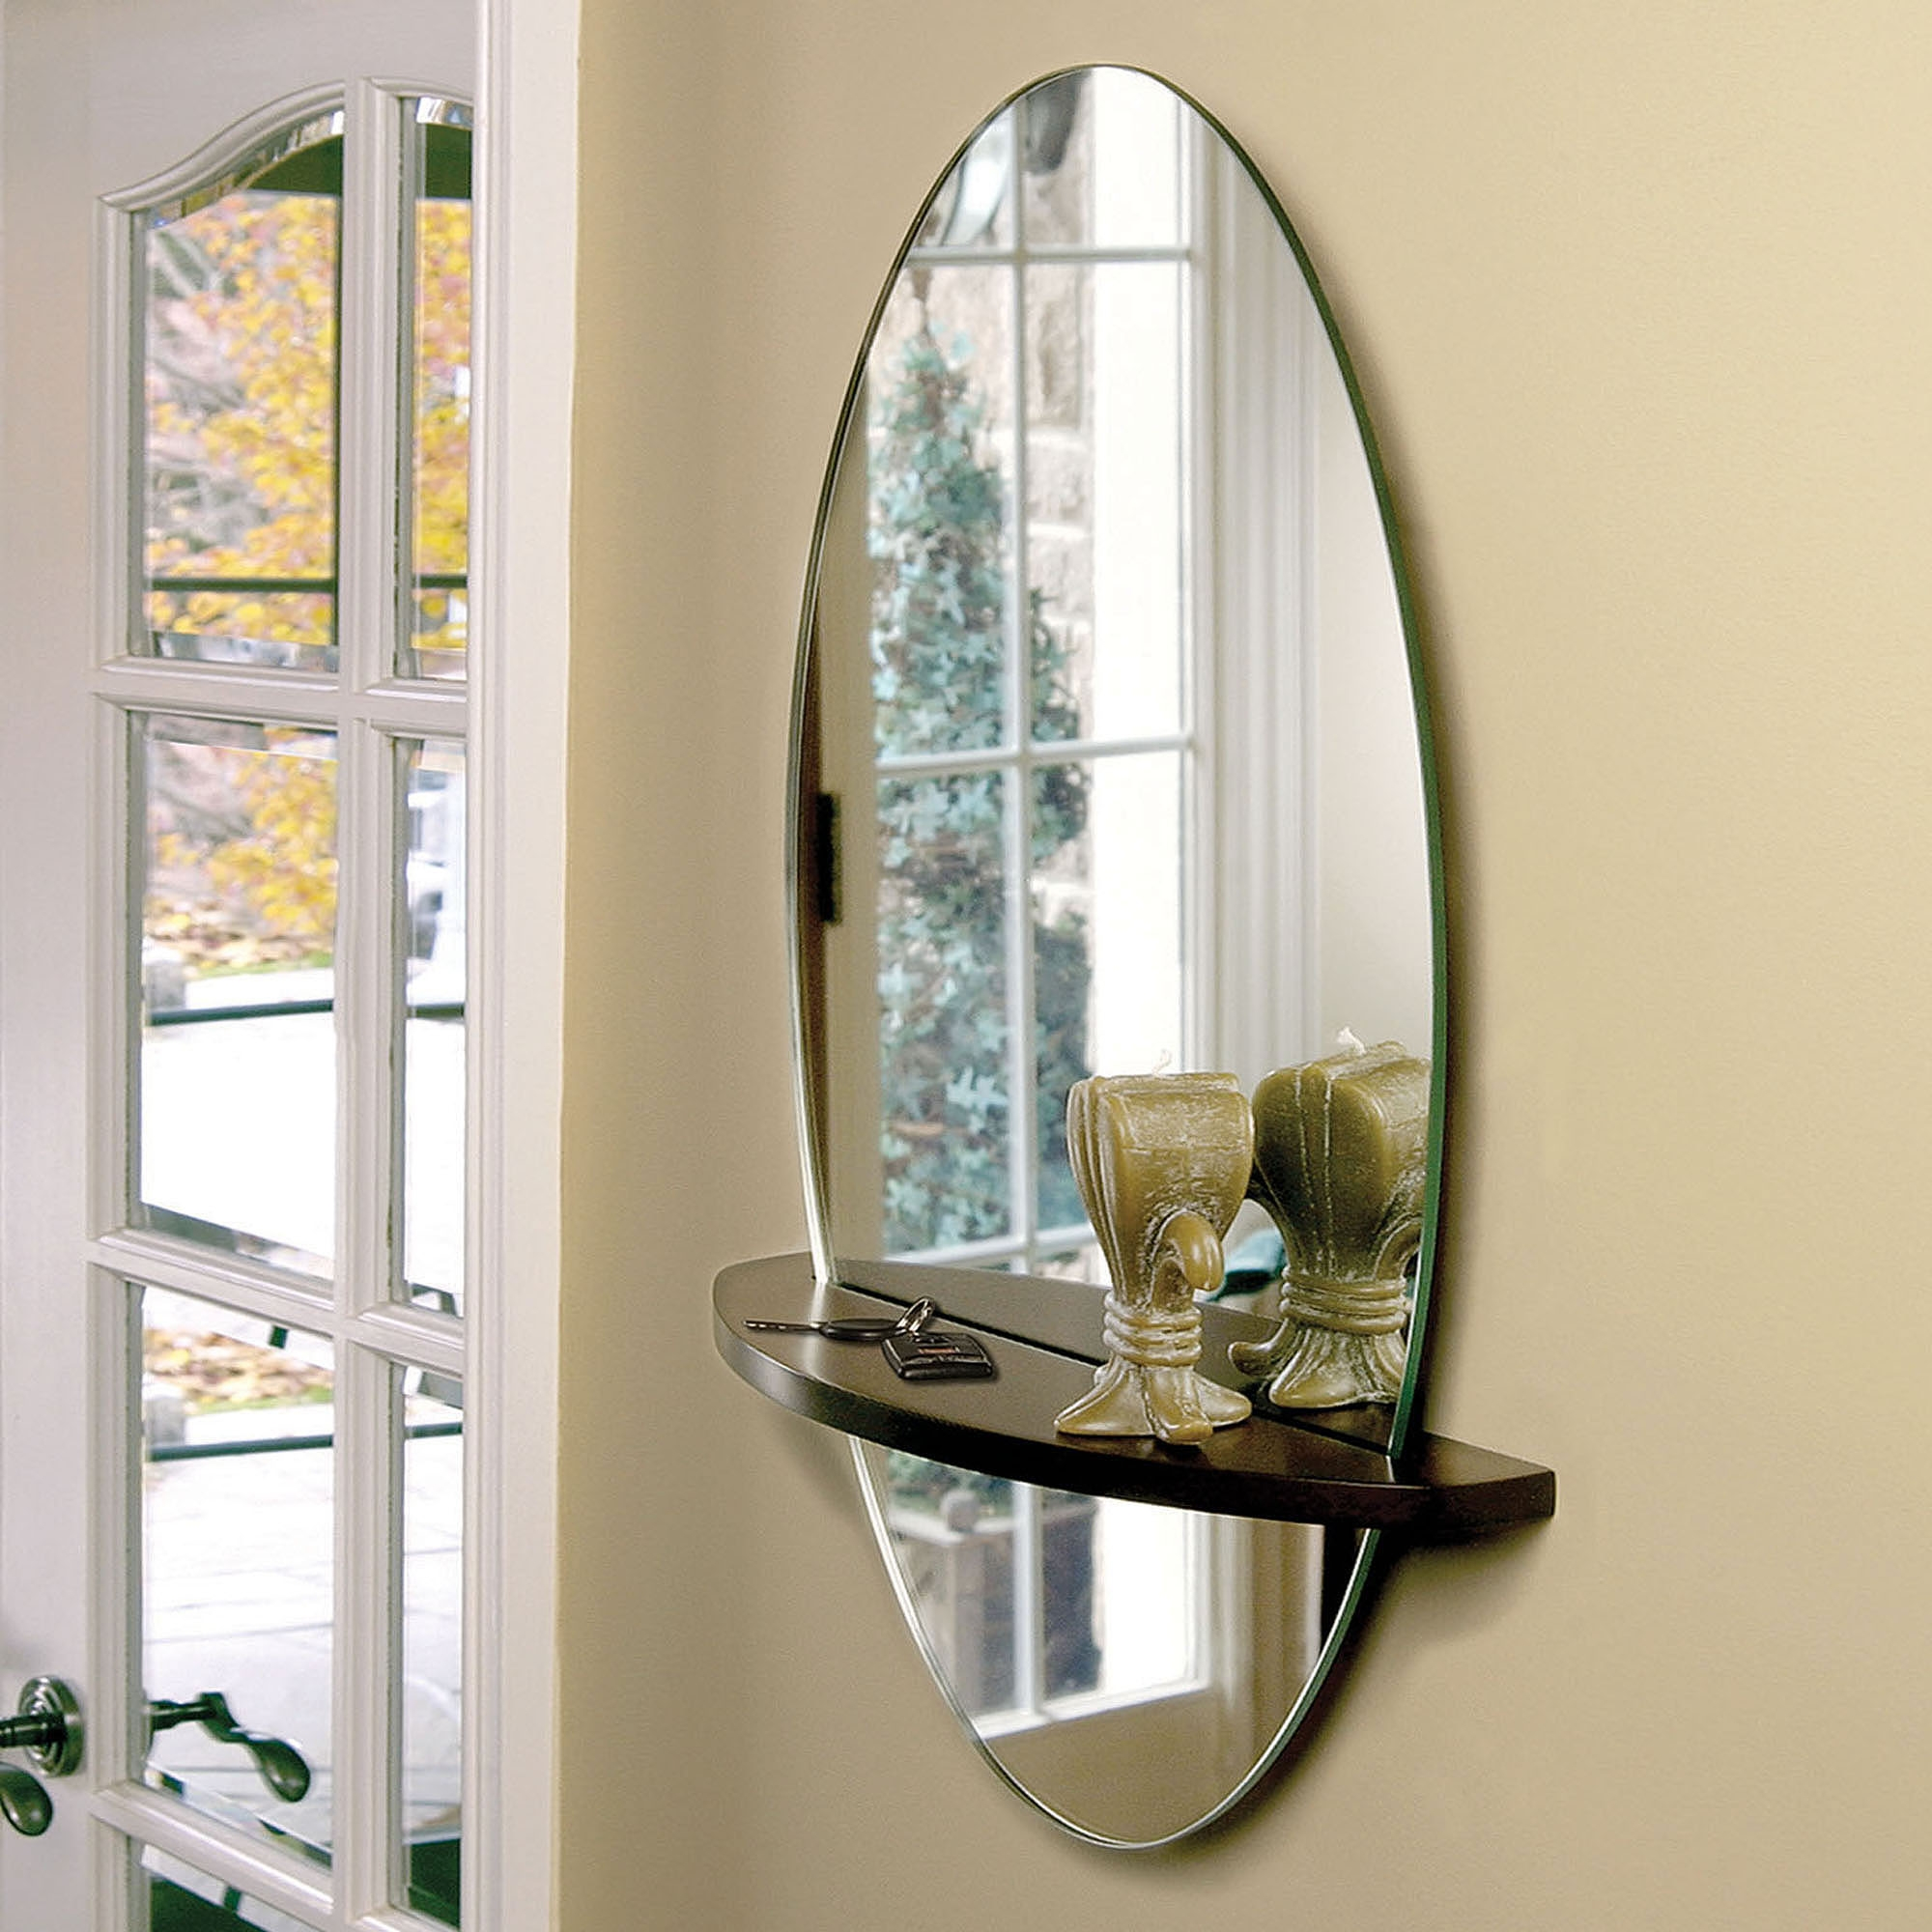 Bathroom Decorative Mirrors With Shelves